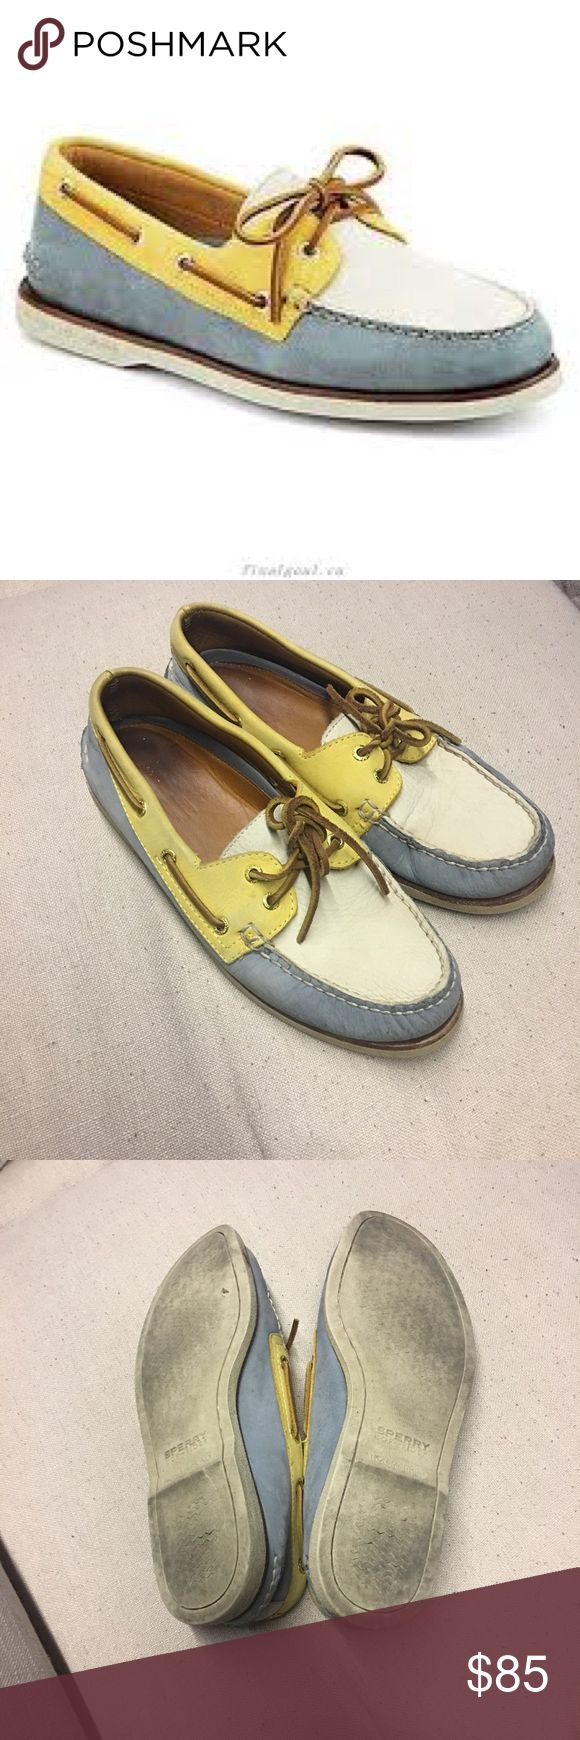 Men's Sperry Top-Sider Gold Cup Original 2-Eye 350304 Boat Shoes Blue/Yellow/Ivory Men's Sperry Top-Sider Gold Cup Authentic. A pale yellow and sky blue boat shoes from Sperry. Good condition, just normal signs of wear  as seen in photos. Men's size 9. Offers are welcomed and I love to bundle so check out the rest of my closet and no trades or holds please. Sperry Shoes Boat Shoes